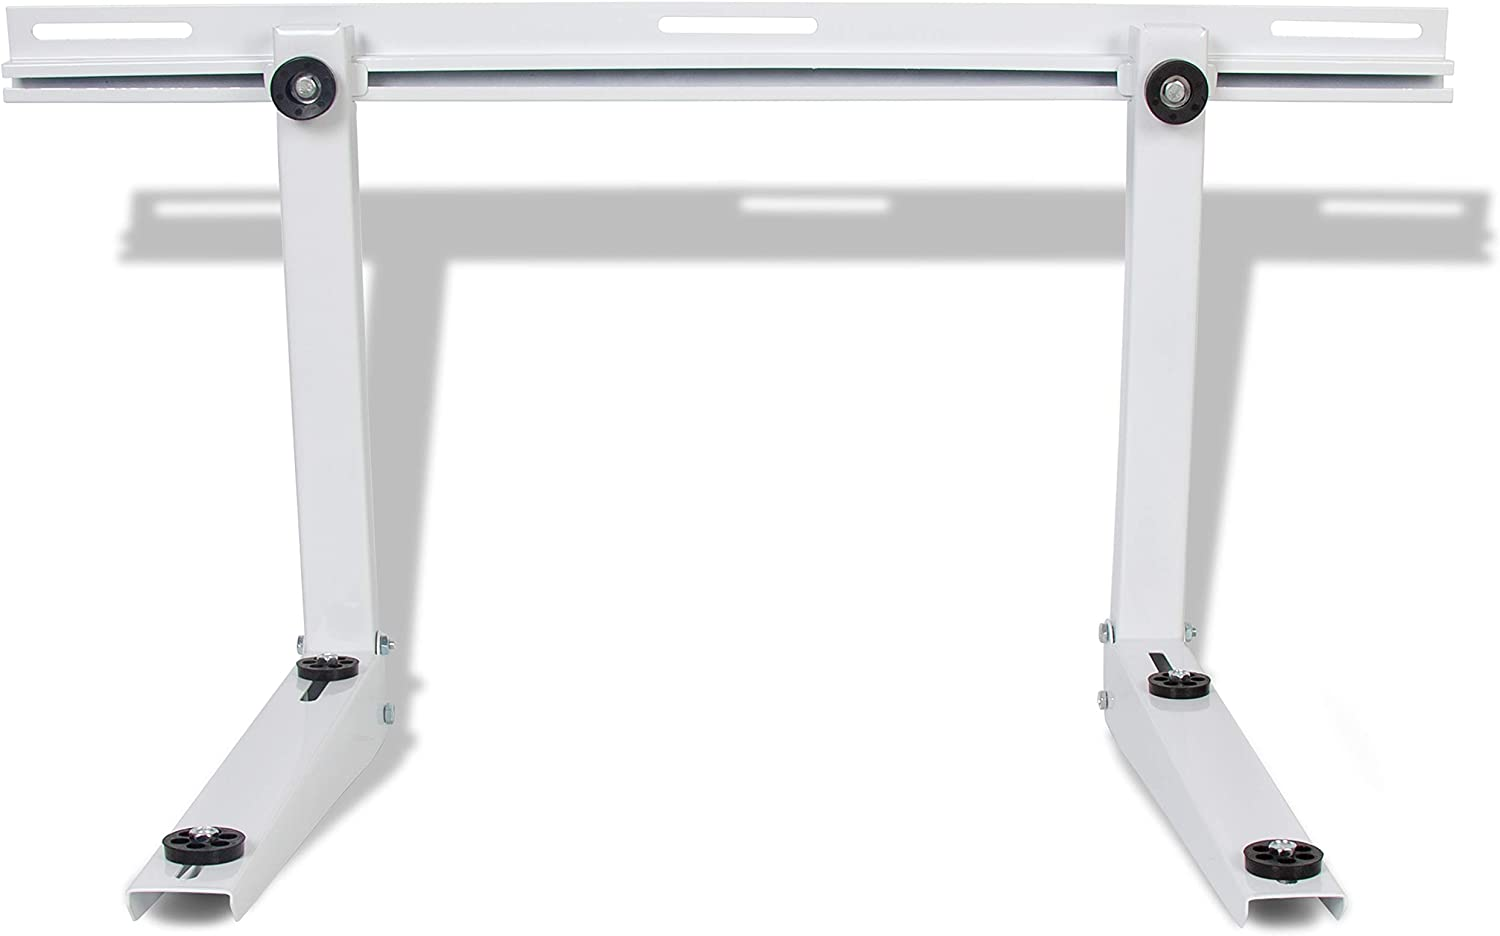 ECOTRIC Universal Outdoor Wall Mounting Bracket Steel for Mini Split Air Conditioners Heat Pump Systems Ductless AC